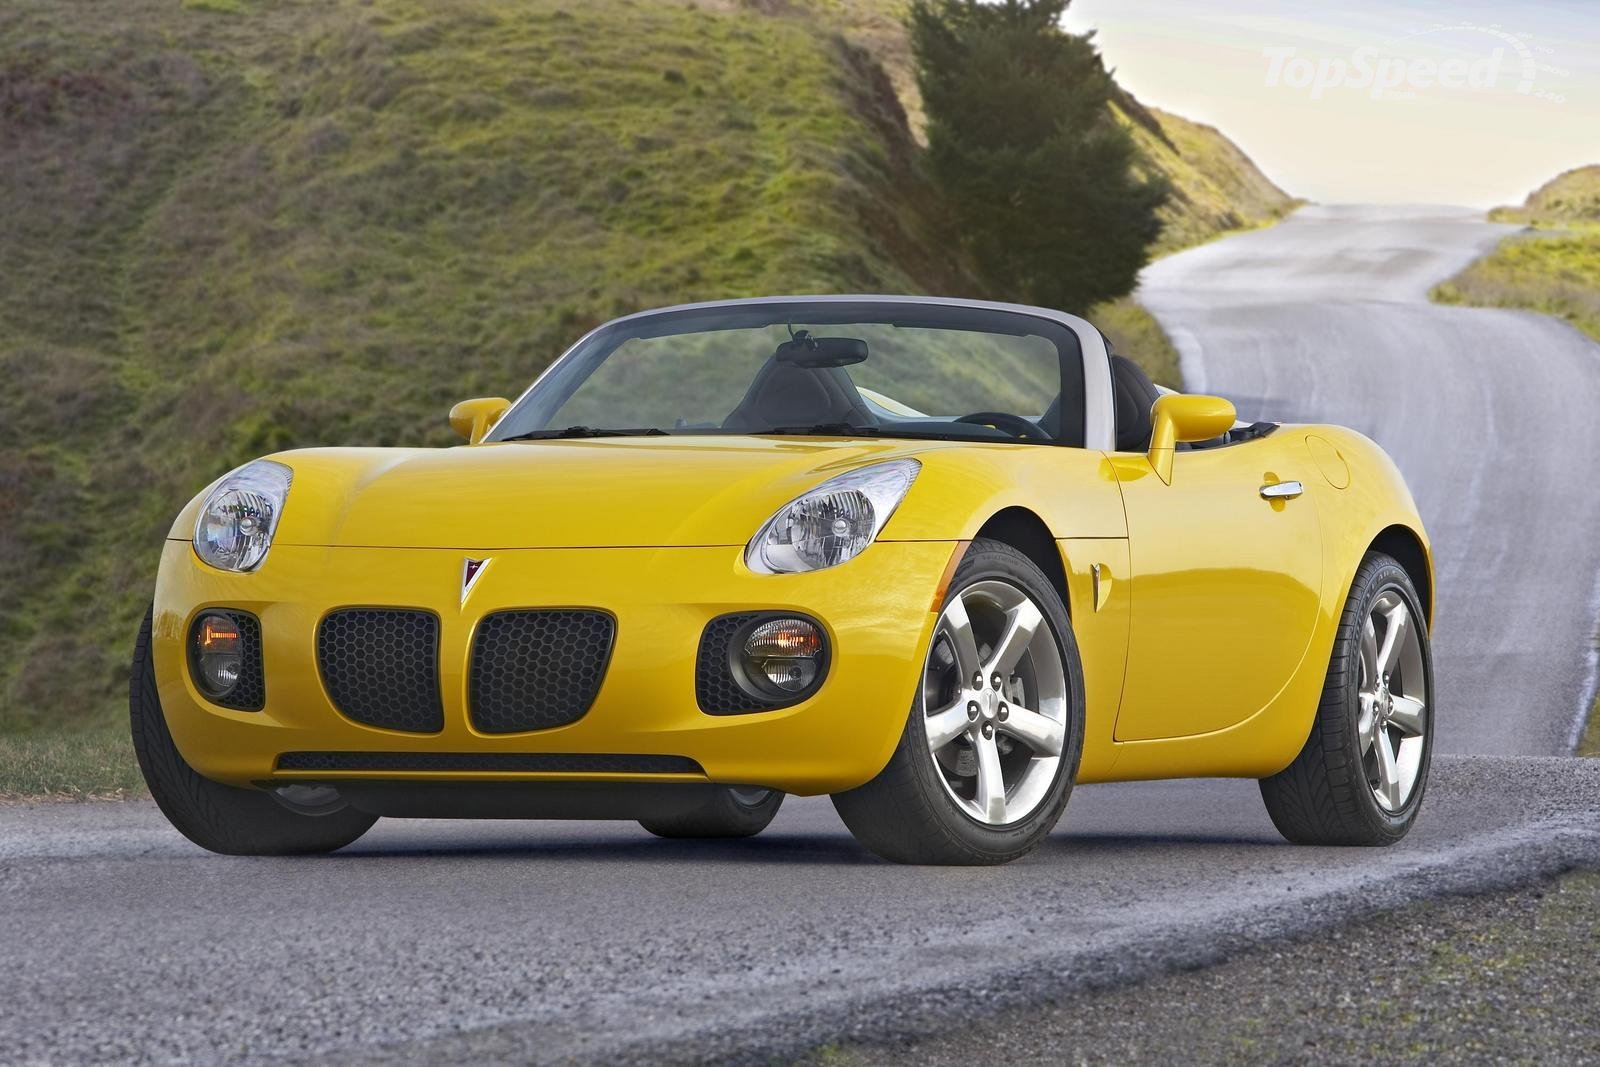 PONTIAC SOLSTICE CONVERTIBLE brown